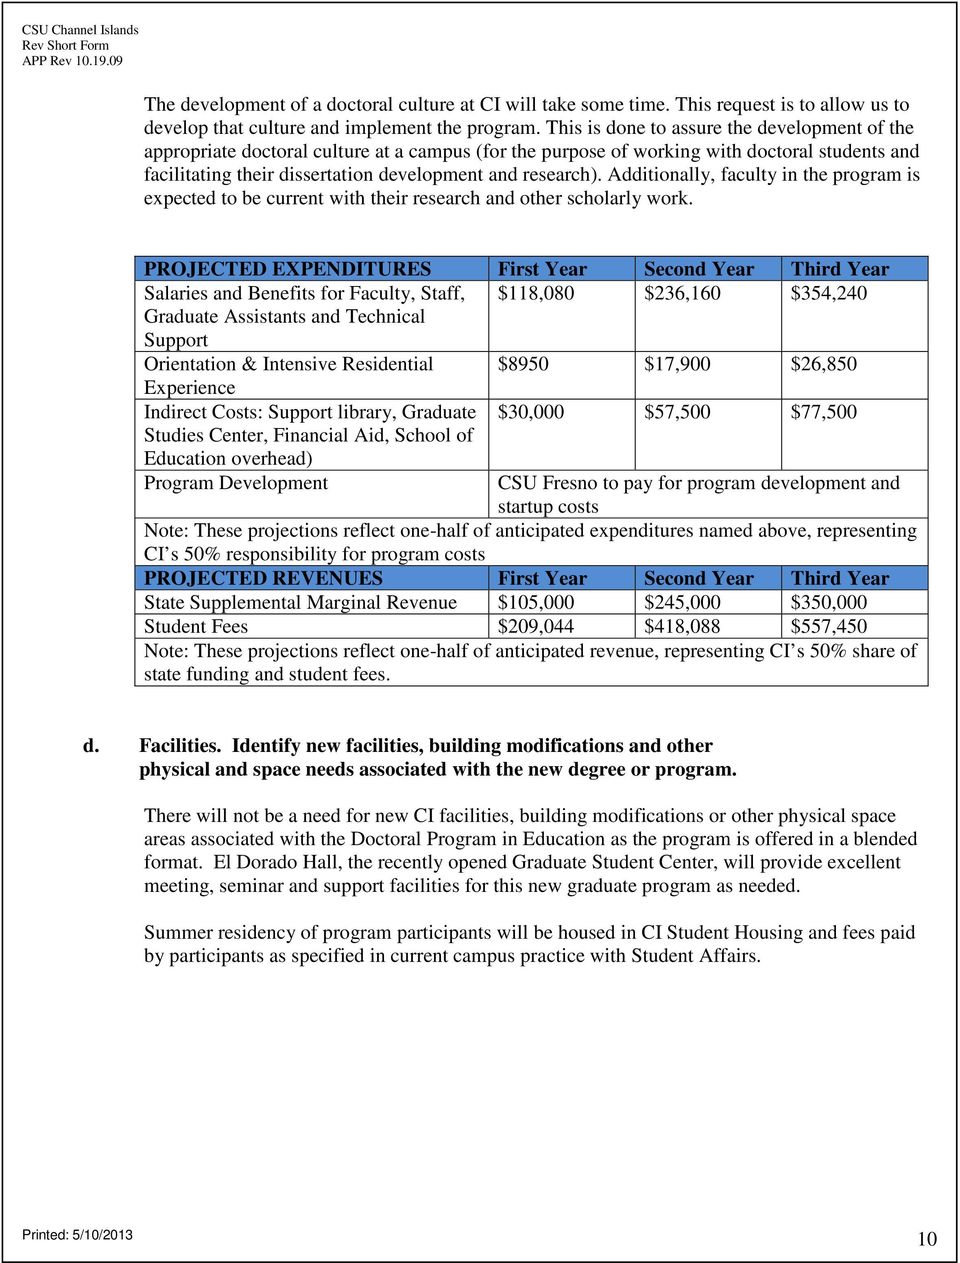 Additionally, faculty in the program is expected to be current with their research and other scholarly work.